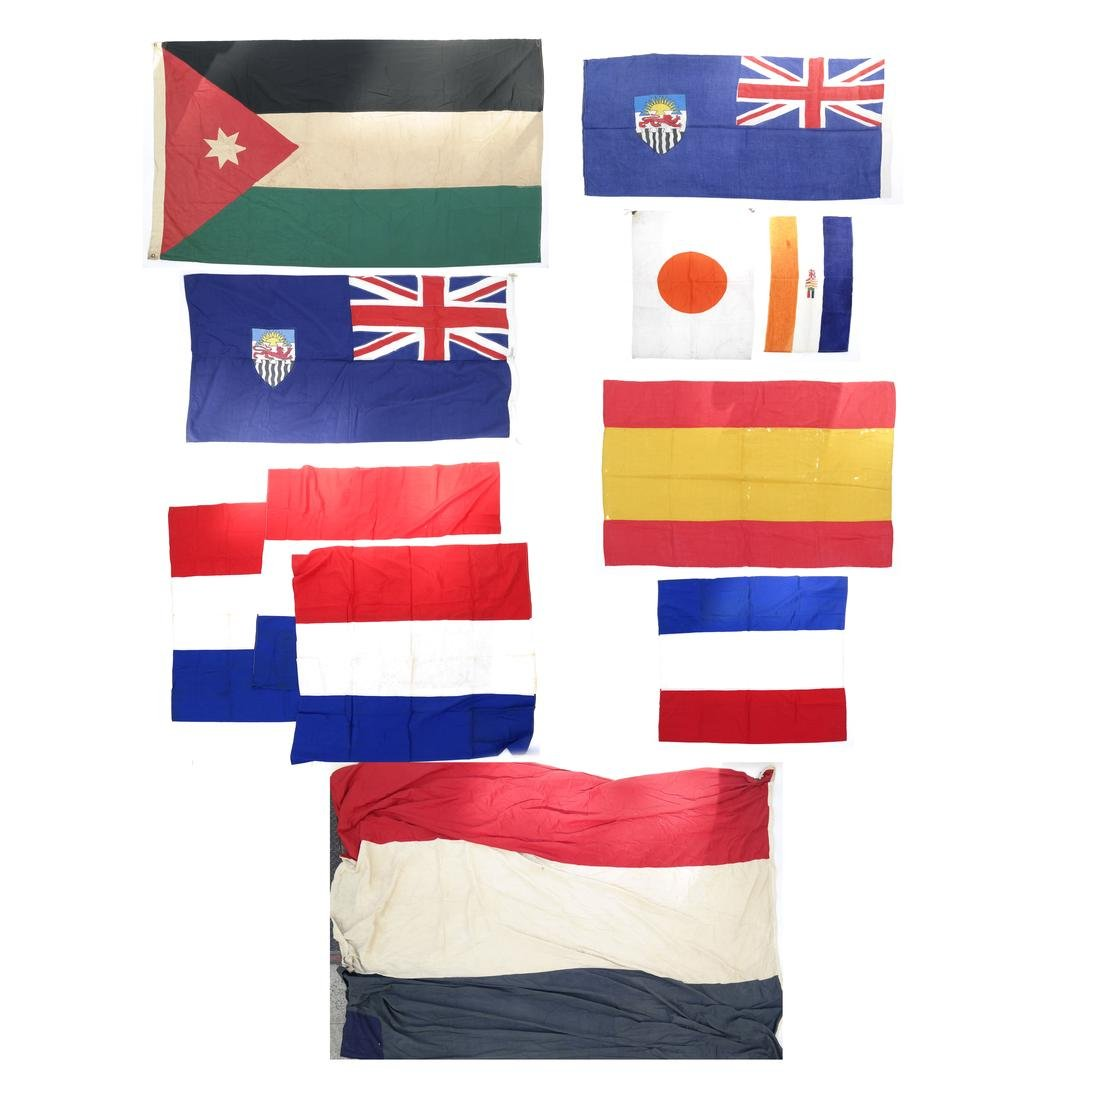 14 INTERNATIONAL FLAGS - EUROPEAN AND AFRICAN